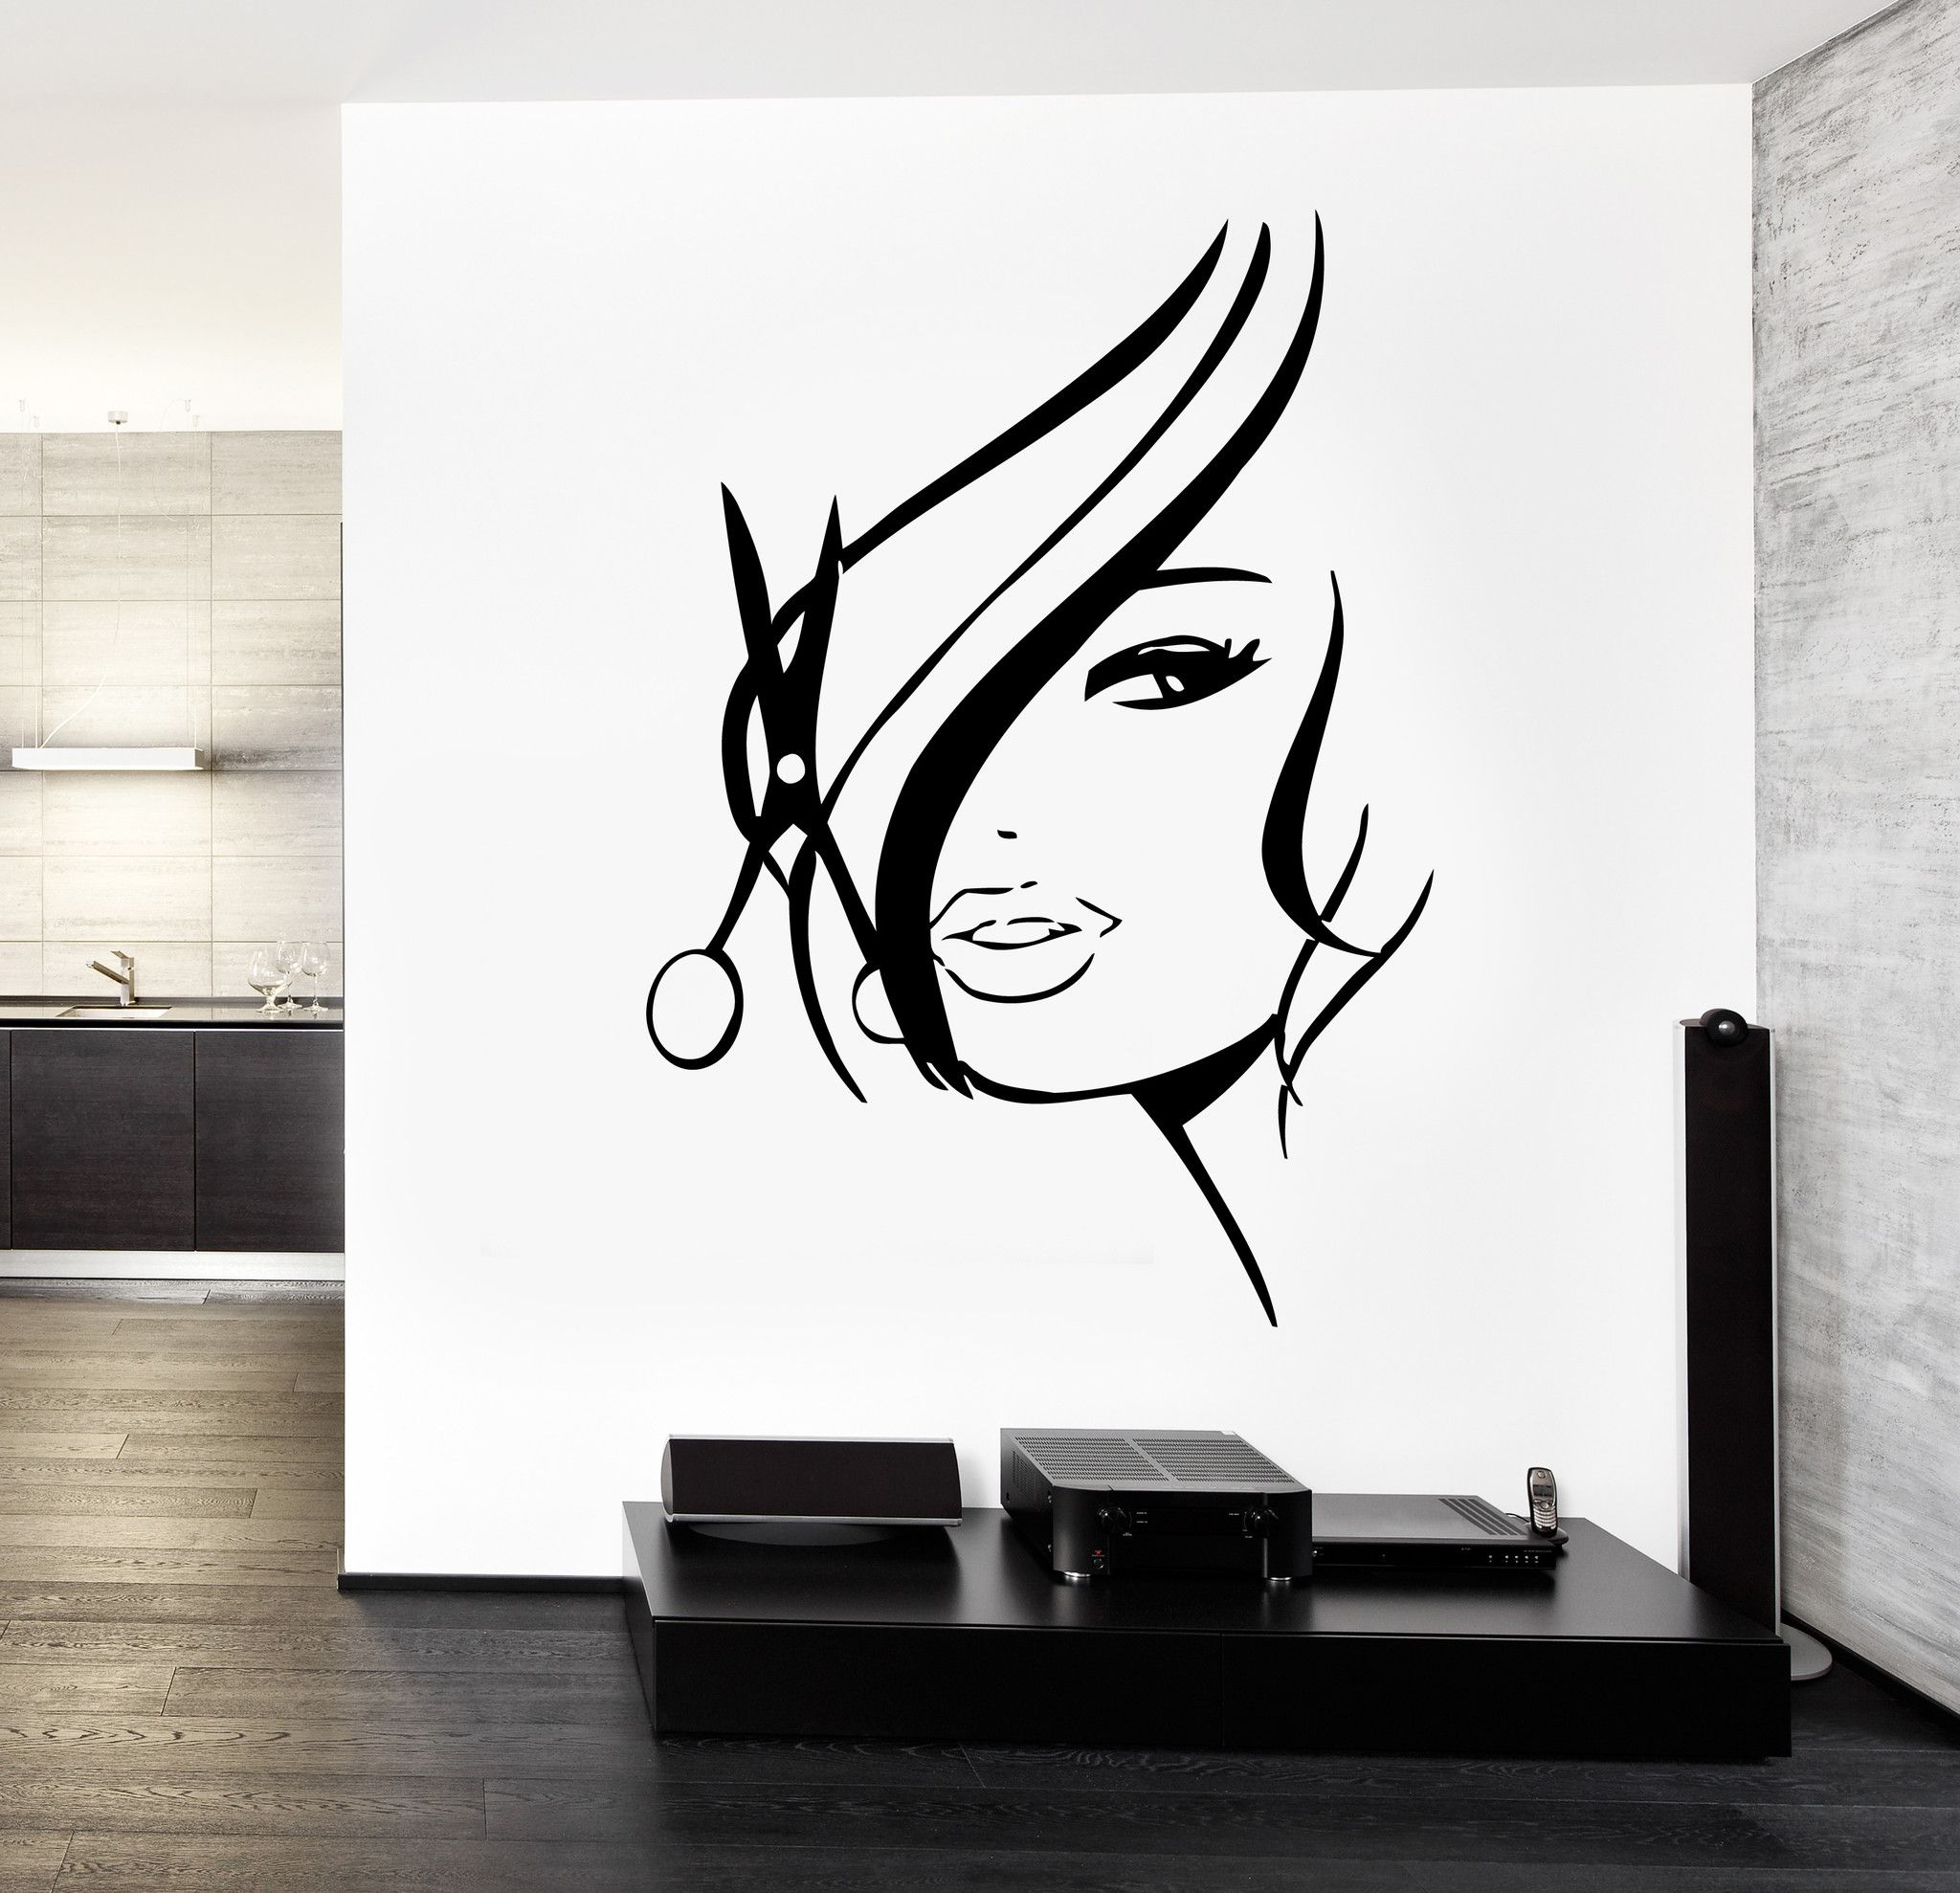 Wall Decal Hair Salon Barbershop Hair Cuttery Unique Gift Z - Custom vinyl wall decals for hair salonvinyl wall decal hair salon stylist hairdresser barber shop